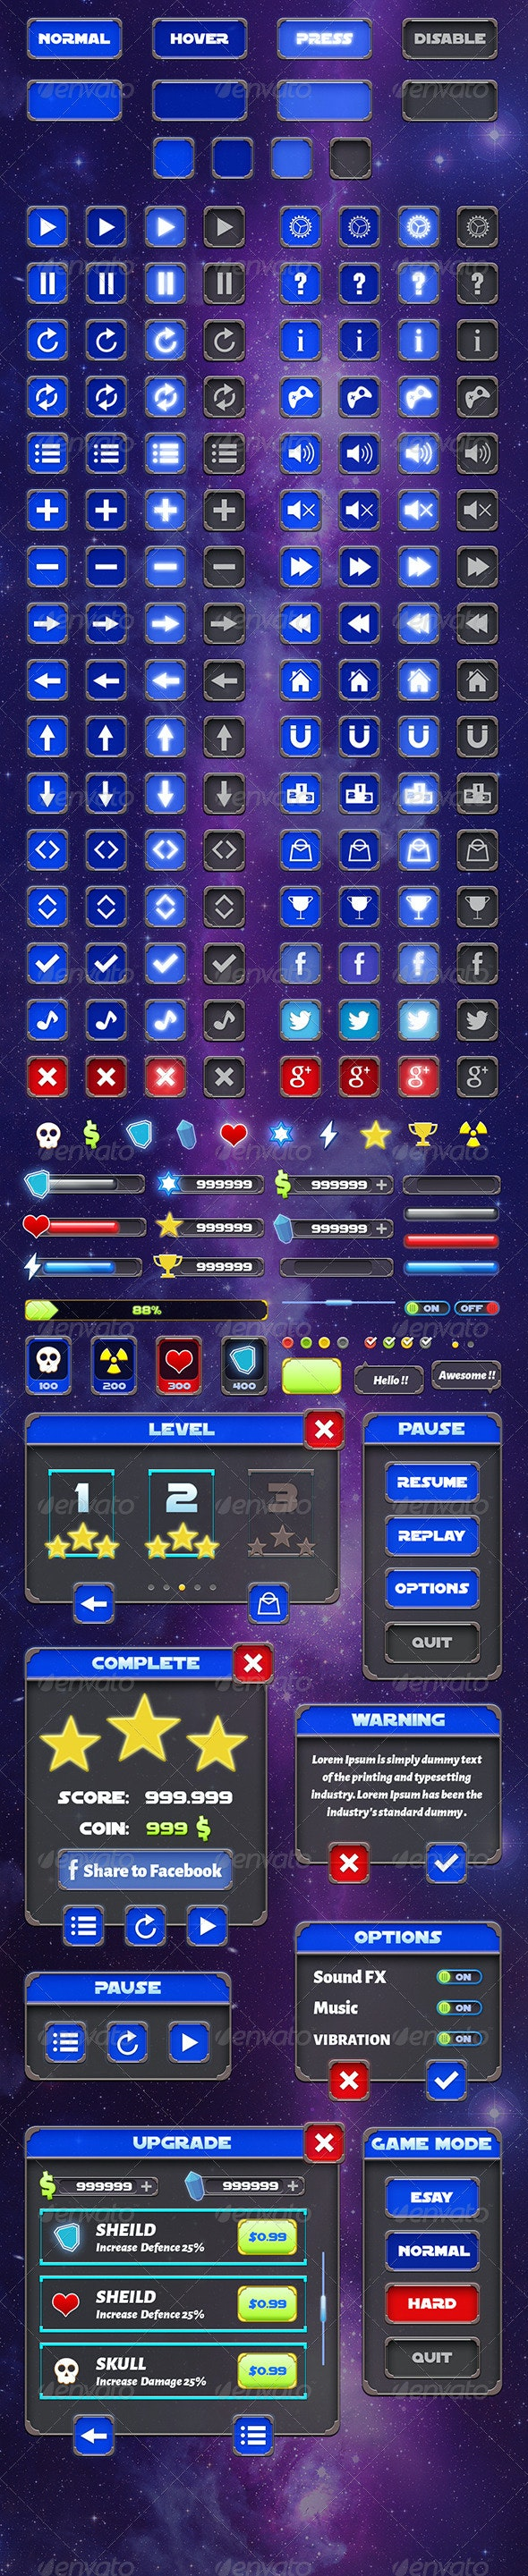 Mobile Game Gui - Vol 5 - User Interfaces Web Elements